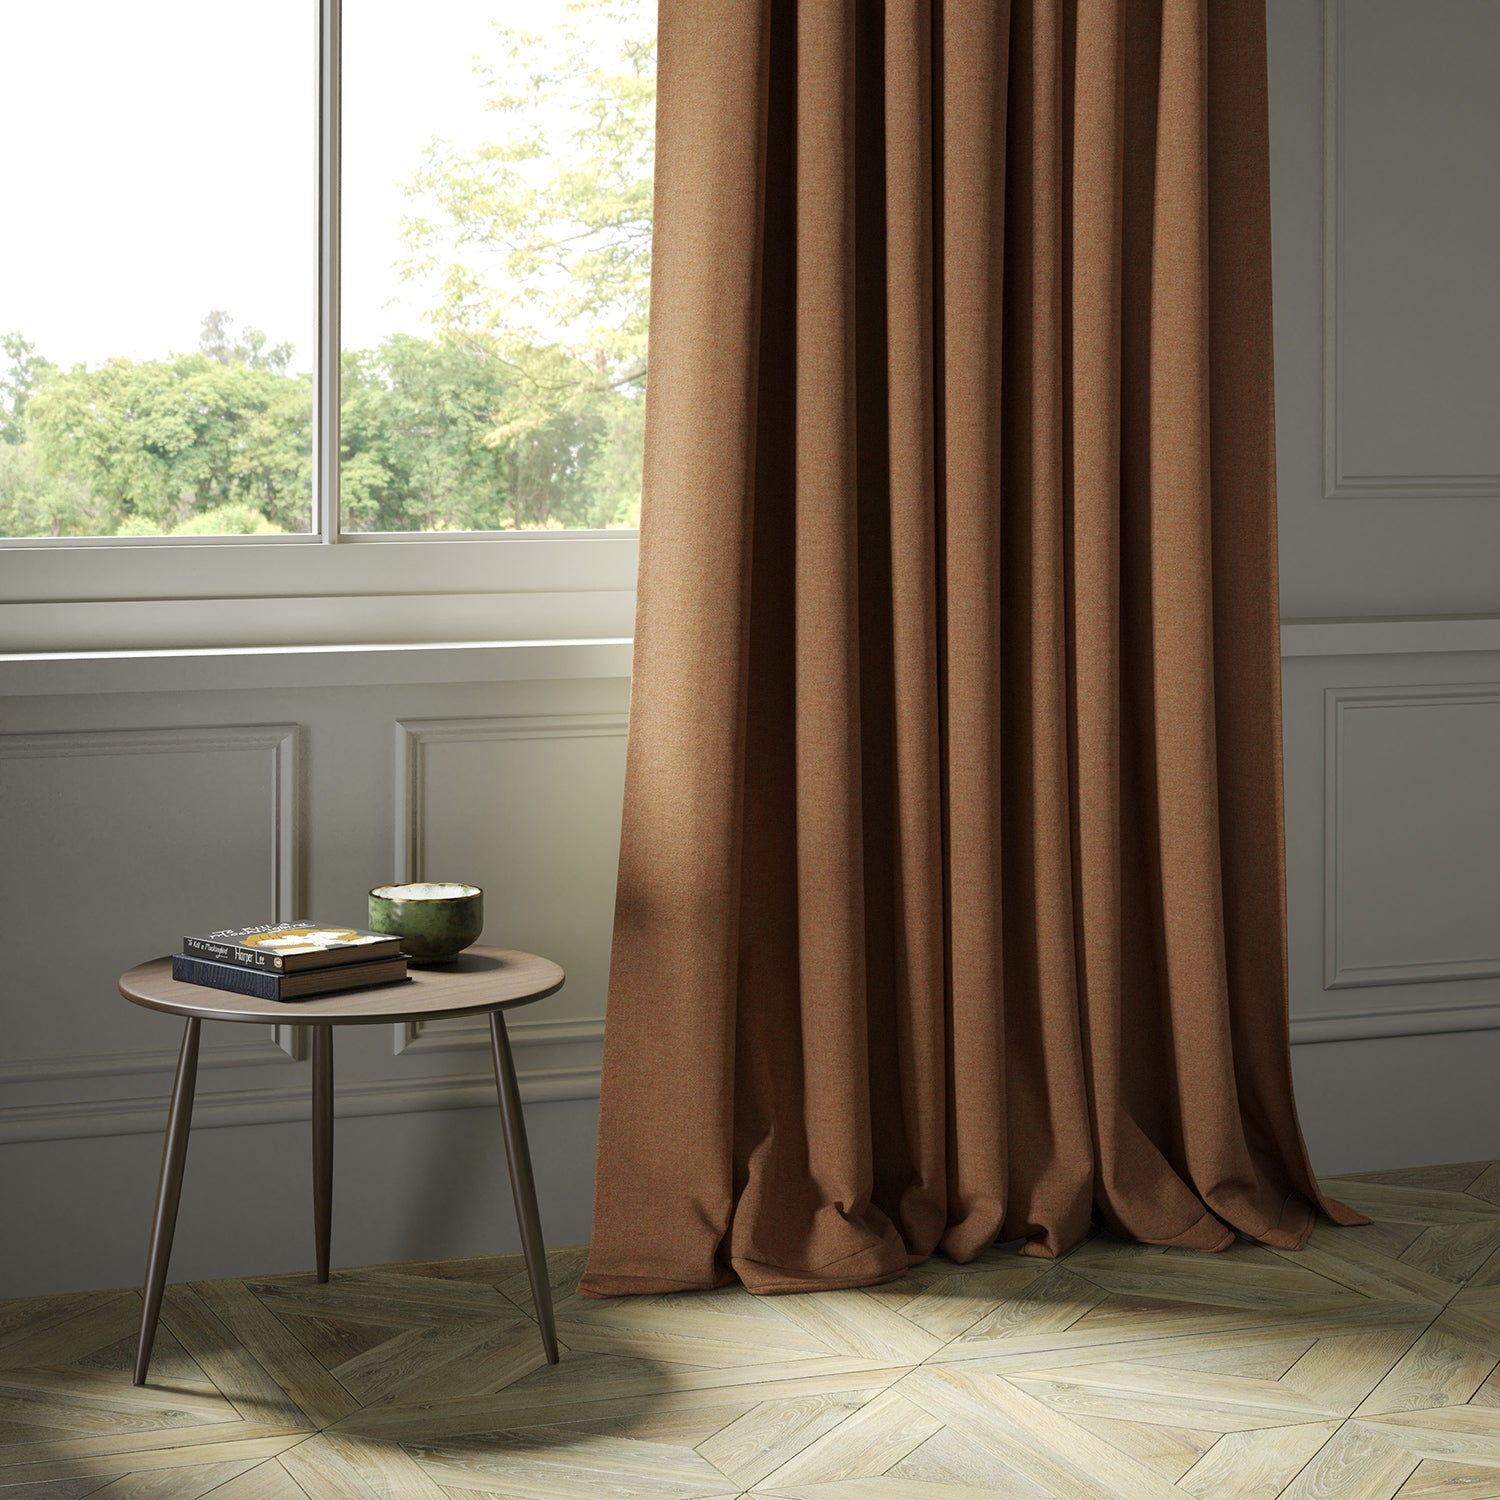 Curtains in a orange Scottish wool herringbone fabric